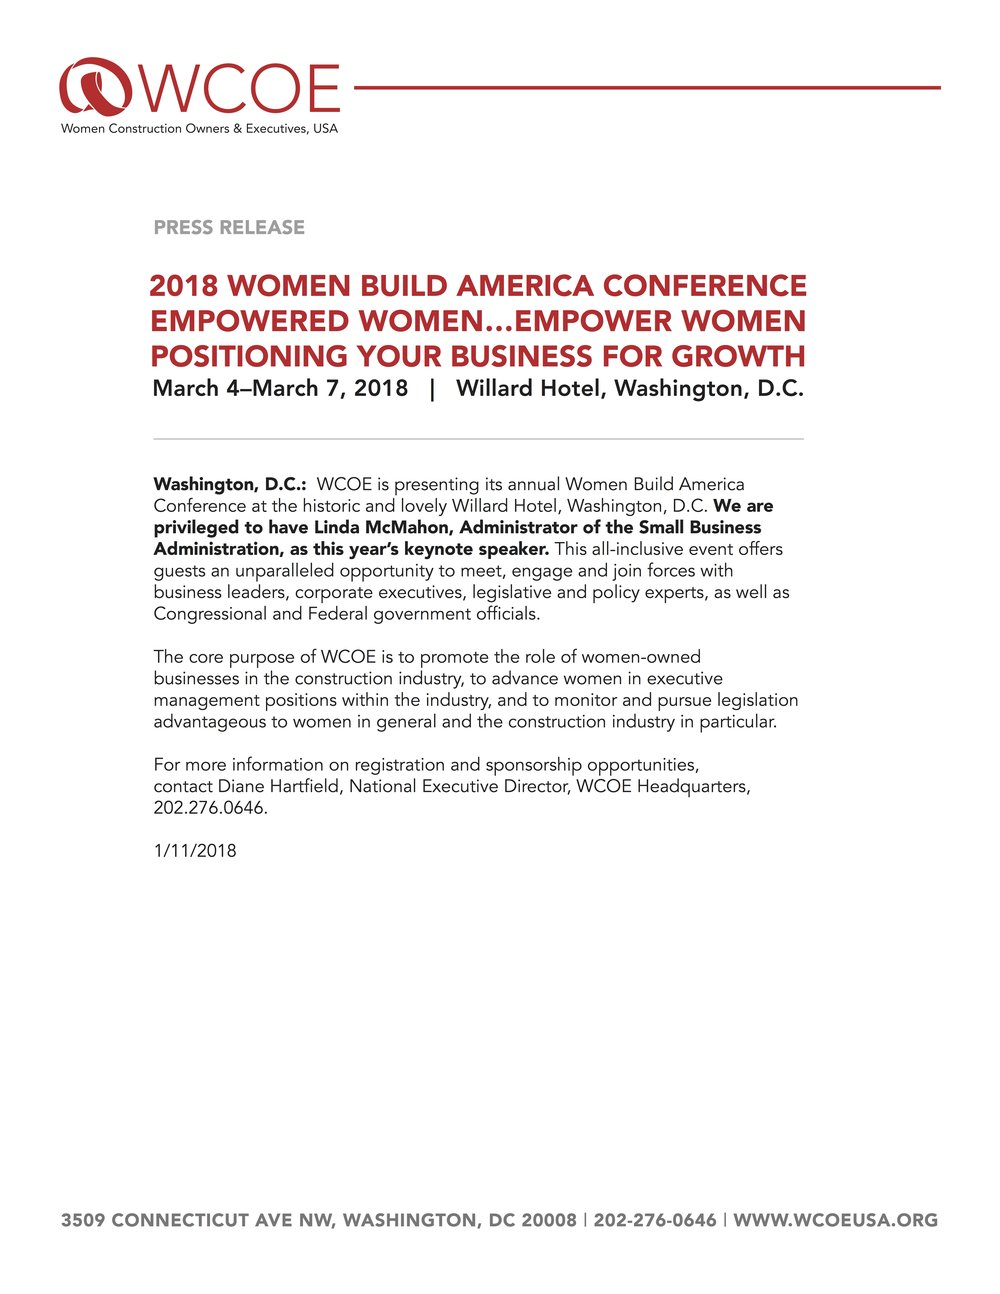 2018-WCOE-women-build-america-press-release.jpg